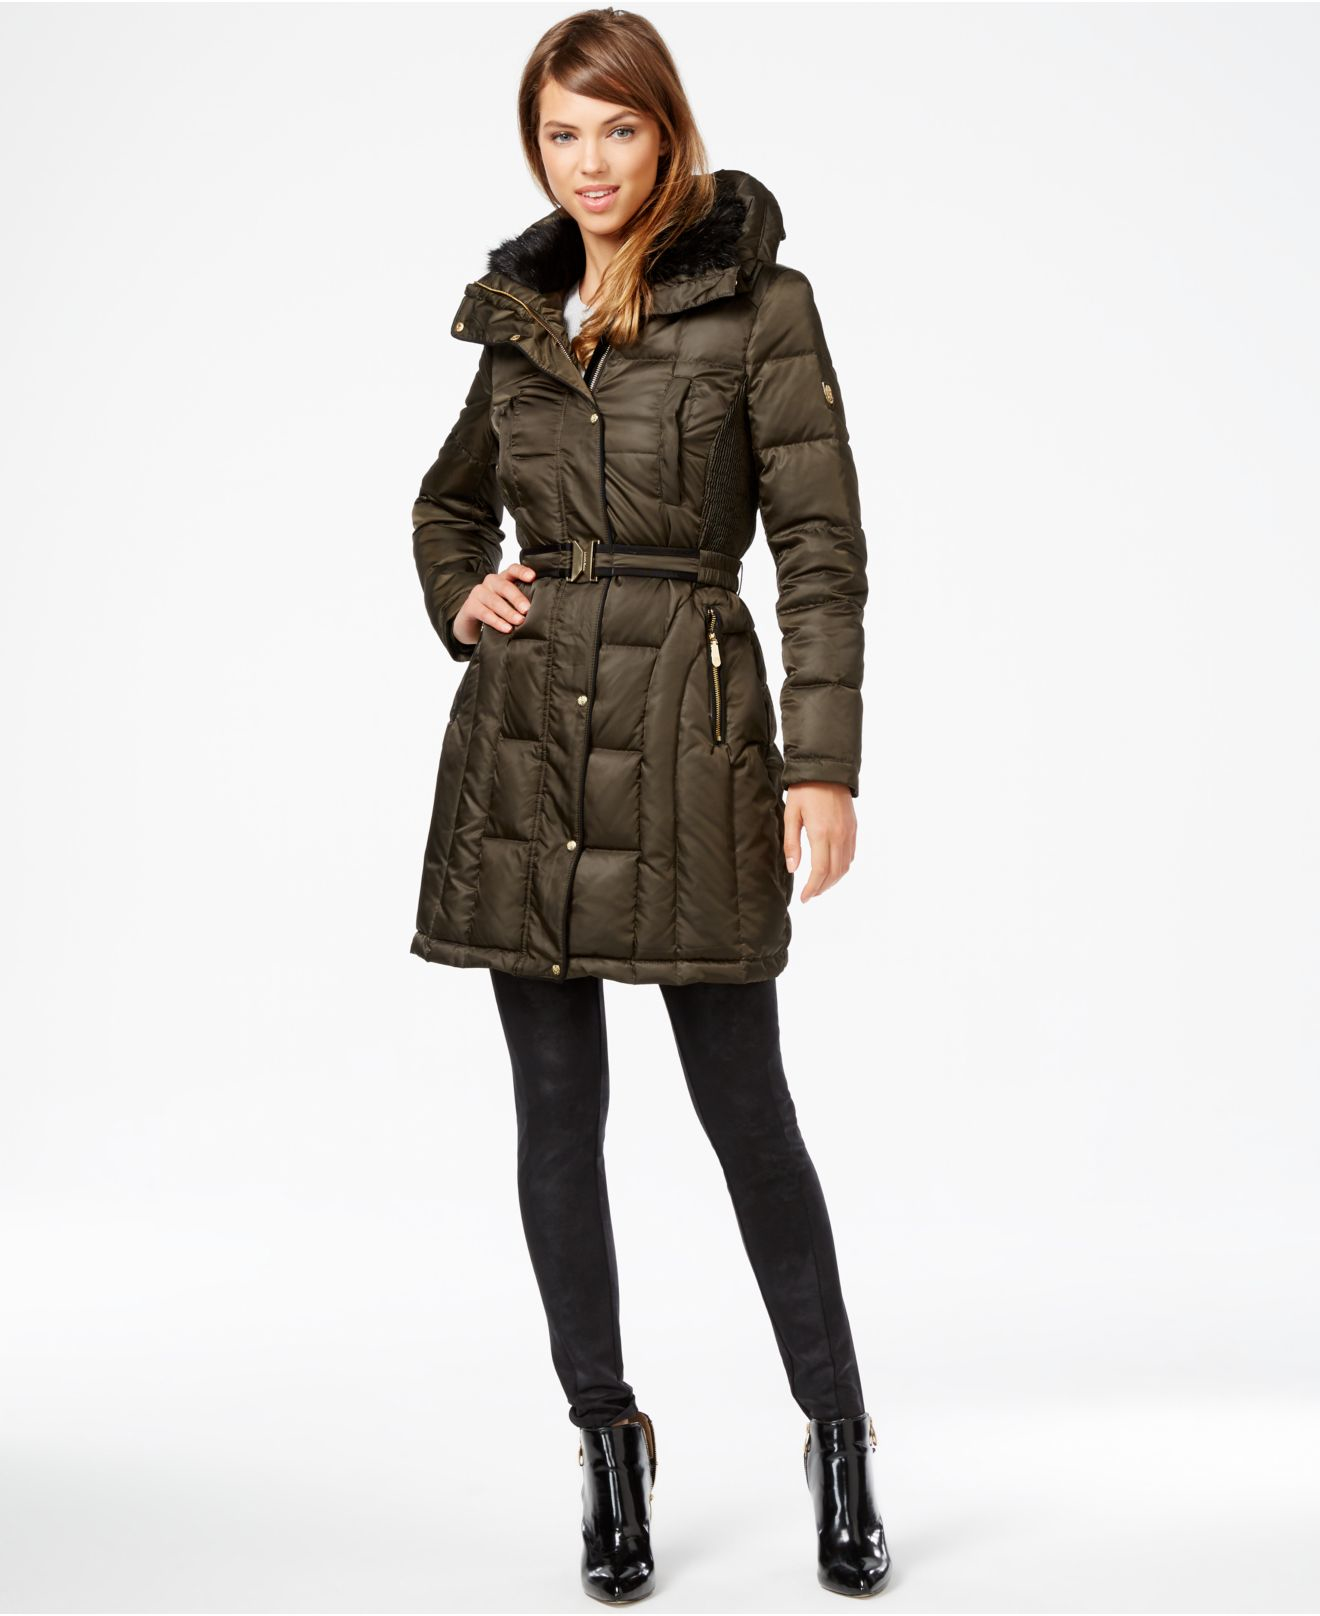 Vince Camuto Faux Fur Lined Quilted Puffer Coat In Green